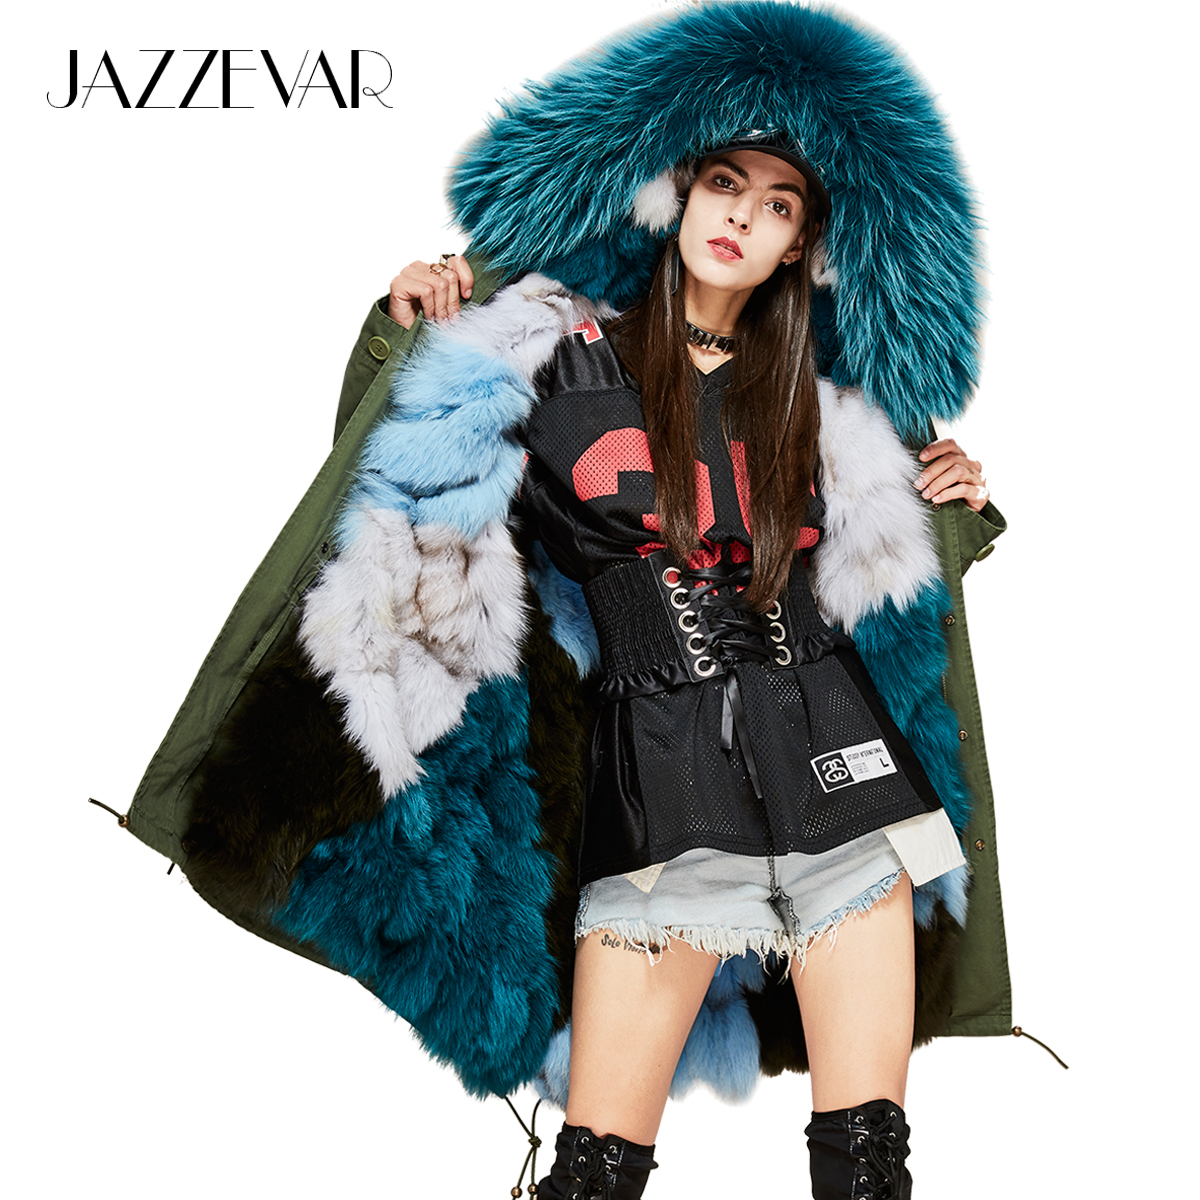 JAZZEVAR 2019 New Woman Luxurious Real Fox Fur Lining Military Parka MIDI Large Raccoon Fur Hooded Coat Outwear Winter Jacket